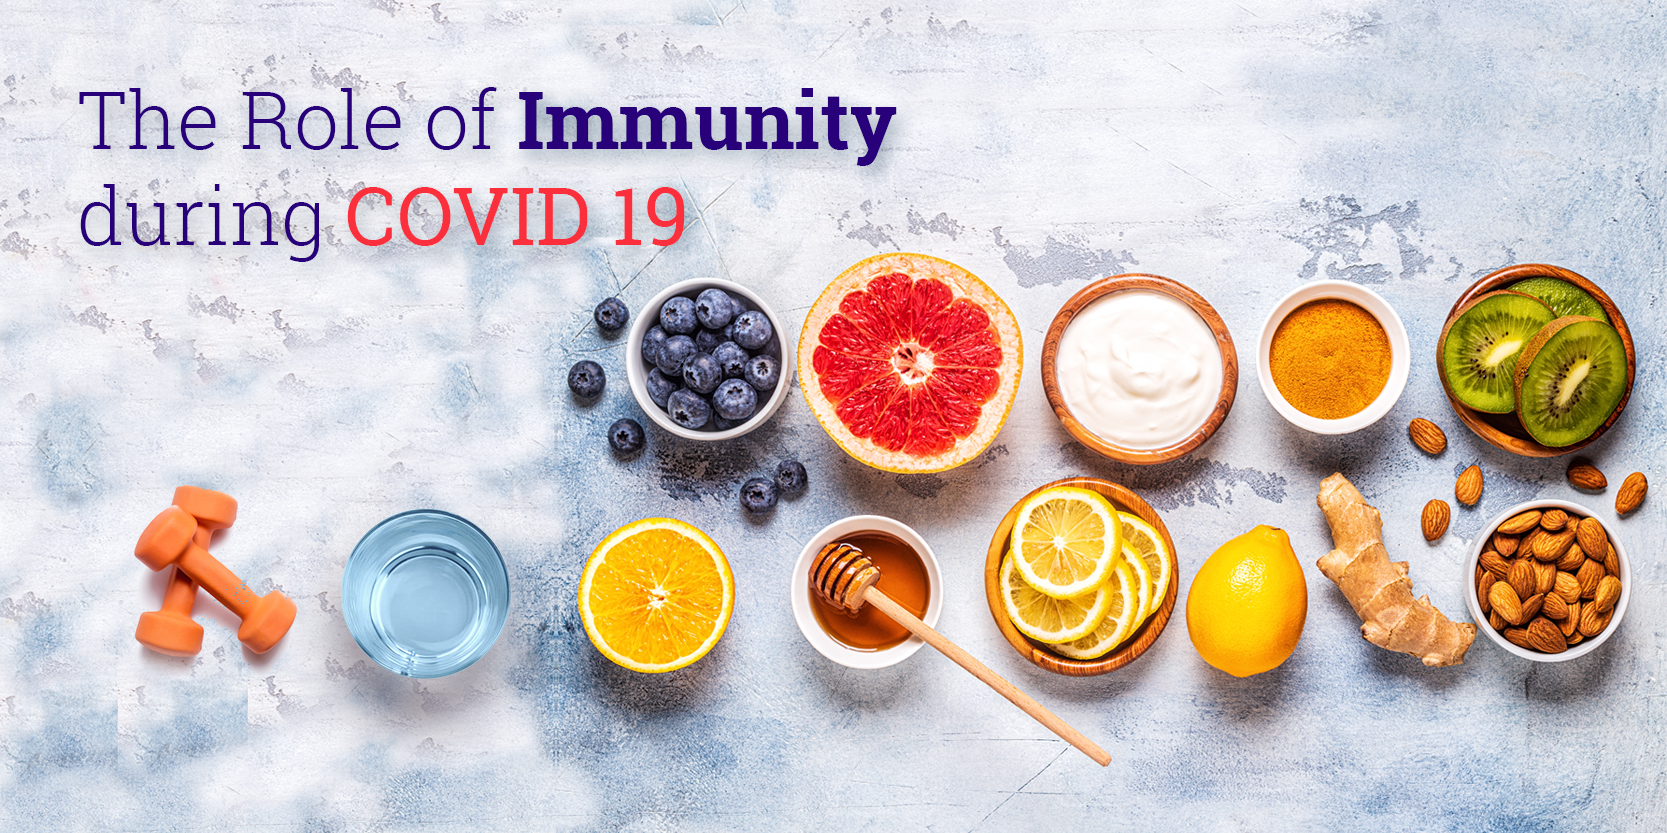 The Role of Immunity during COVID 19